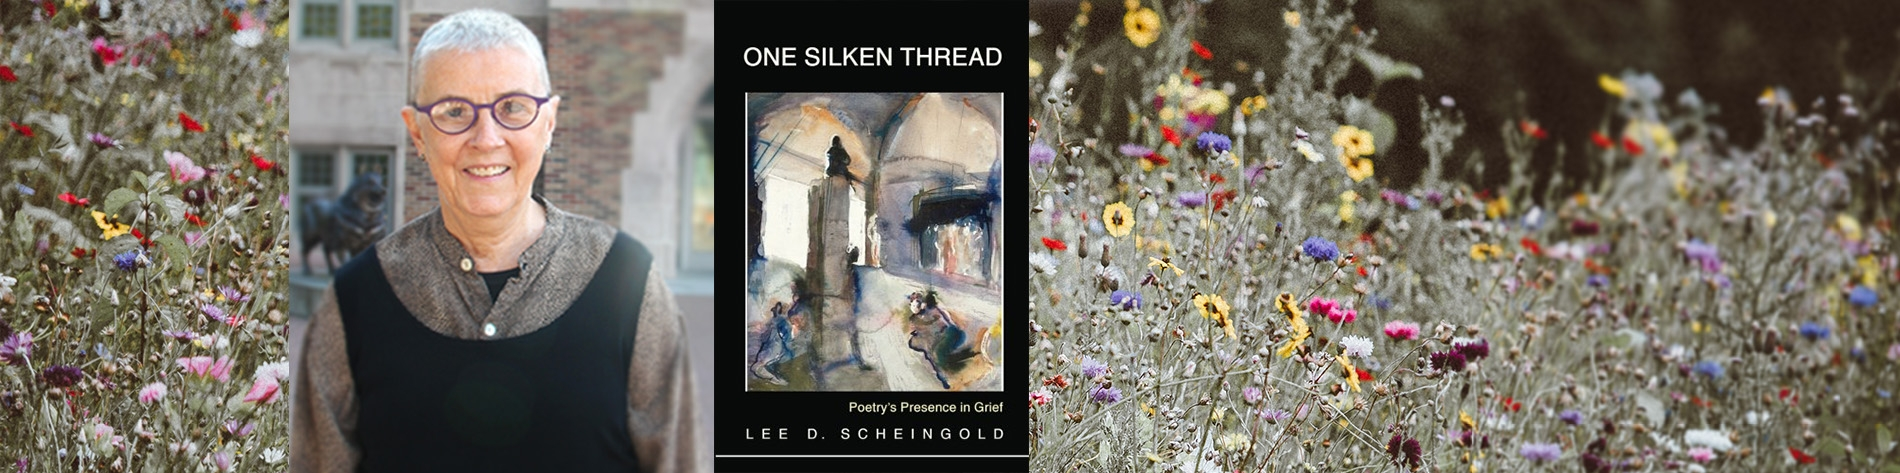 A woman and the book cover of One Silken Thread and flowers